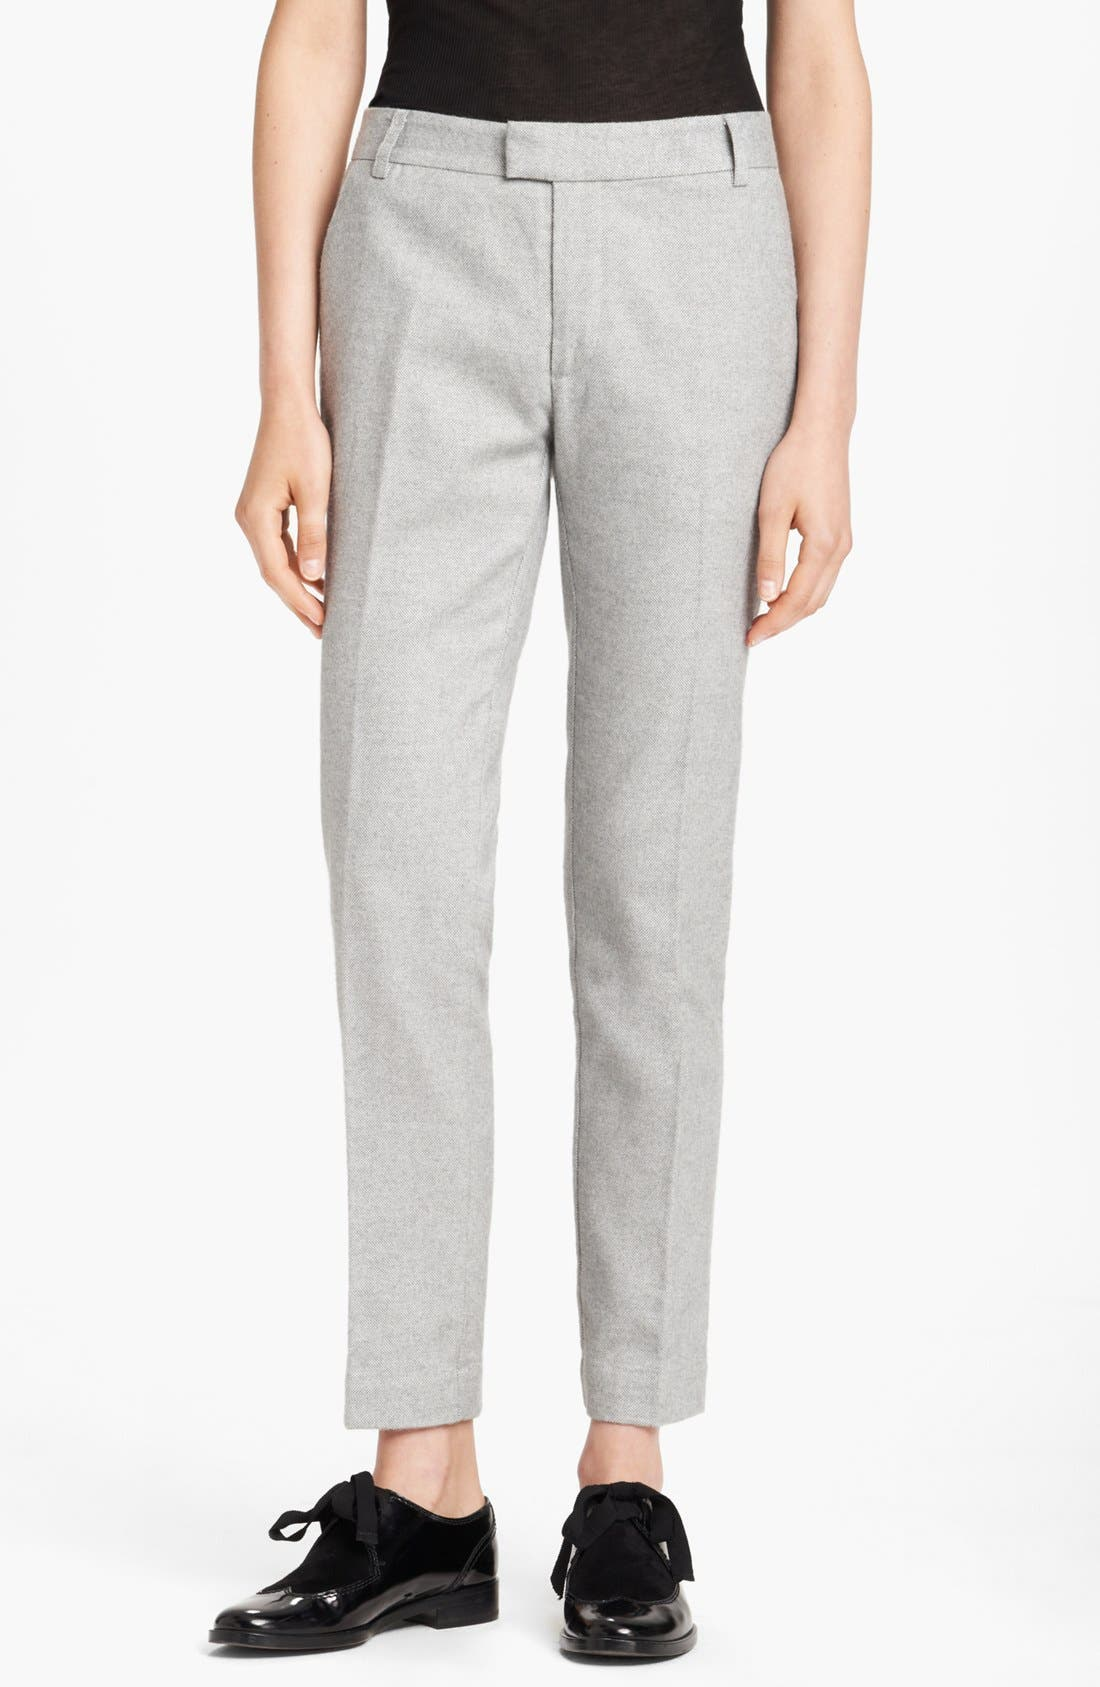 Alternate Image 1 Selected - Band of Outsiders Slim Tweed Pants